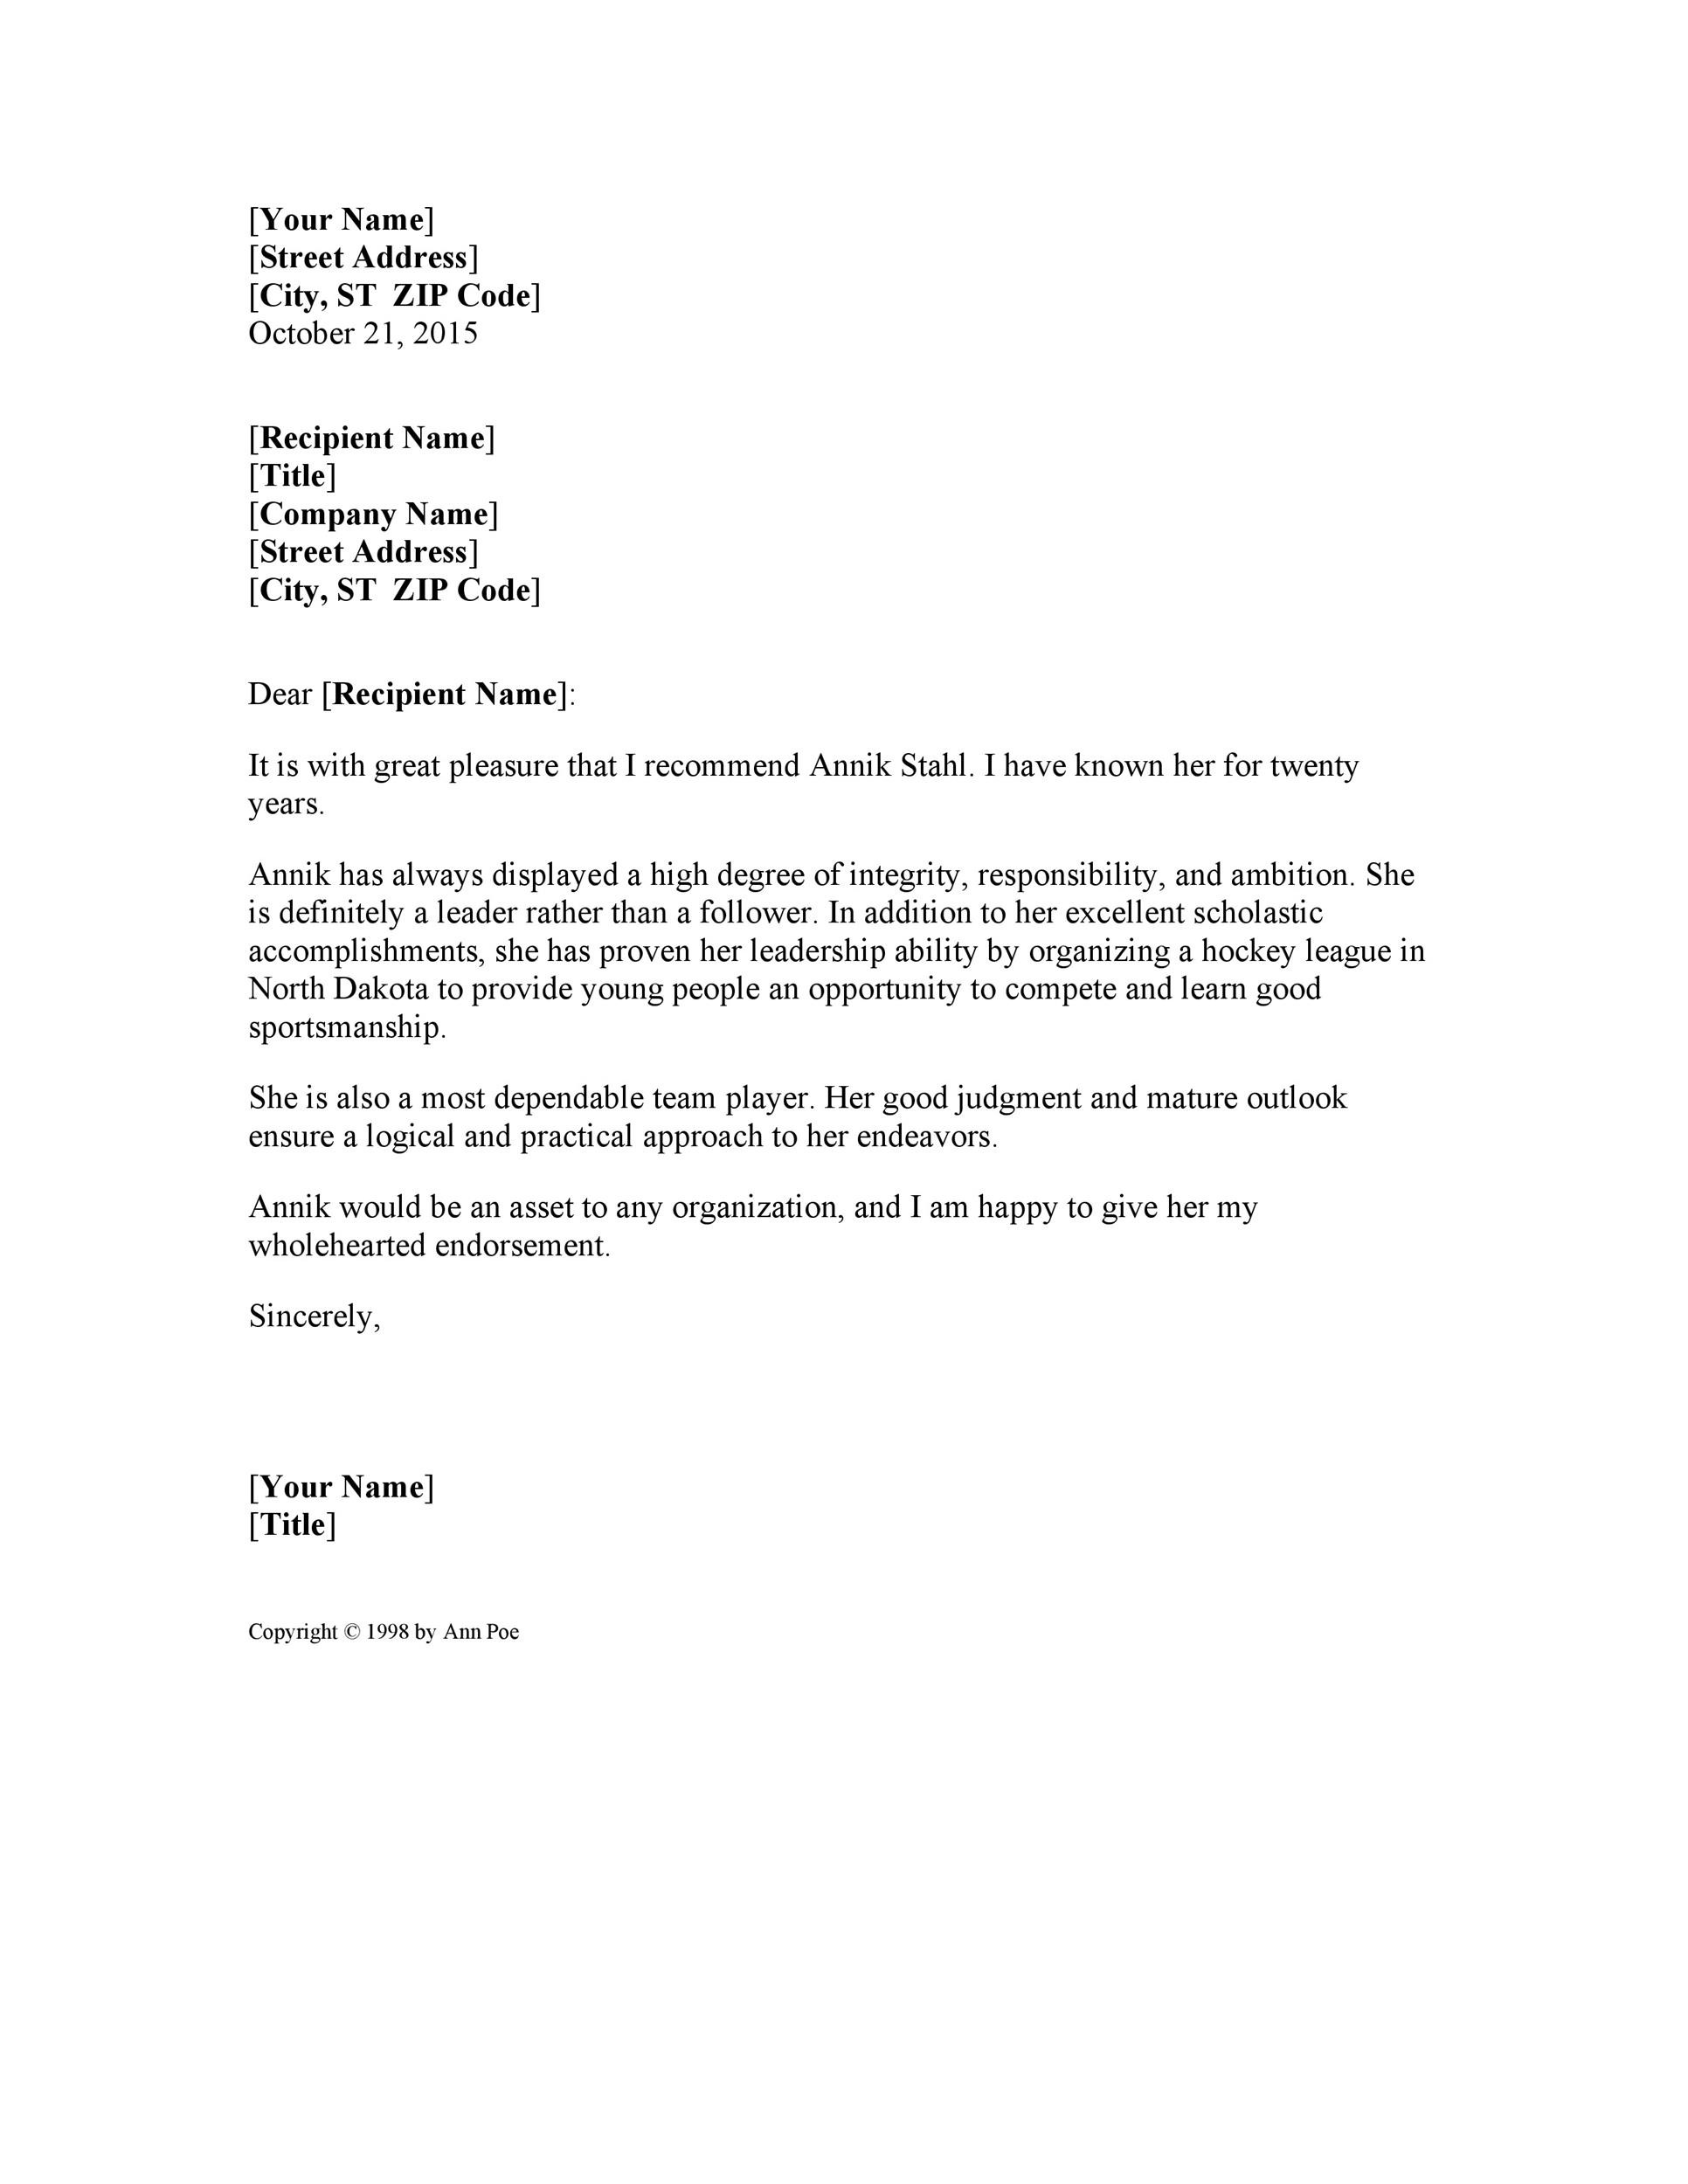 personal recommendation letter for a friend sample personal recommendation letter - Goal.goodwinmetals.co